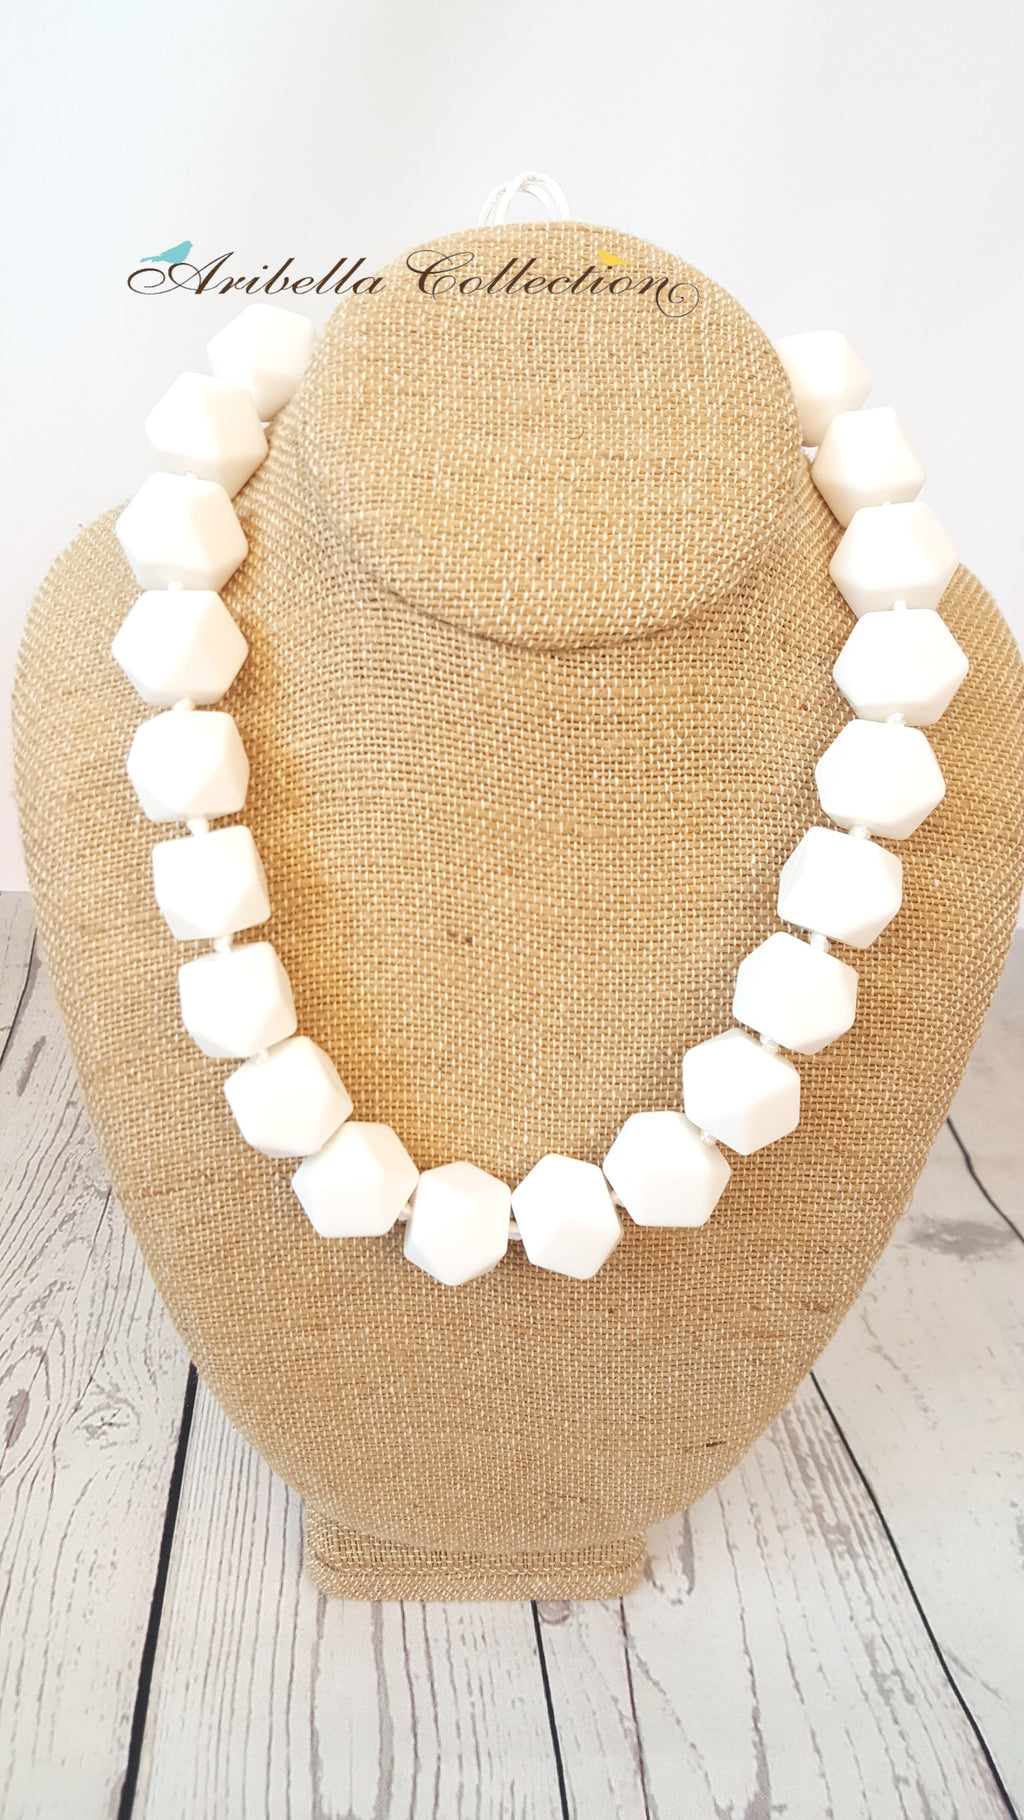 Silicone Necklace - White - Aribella Collection